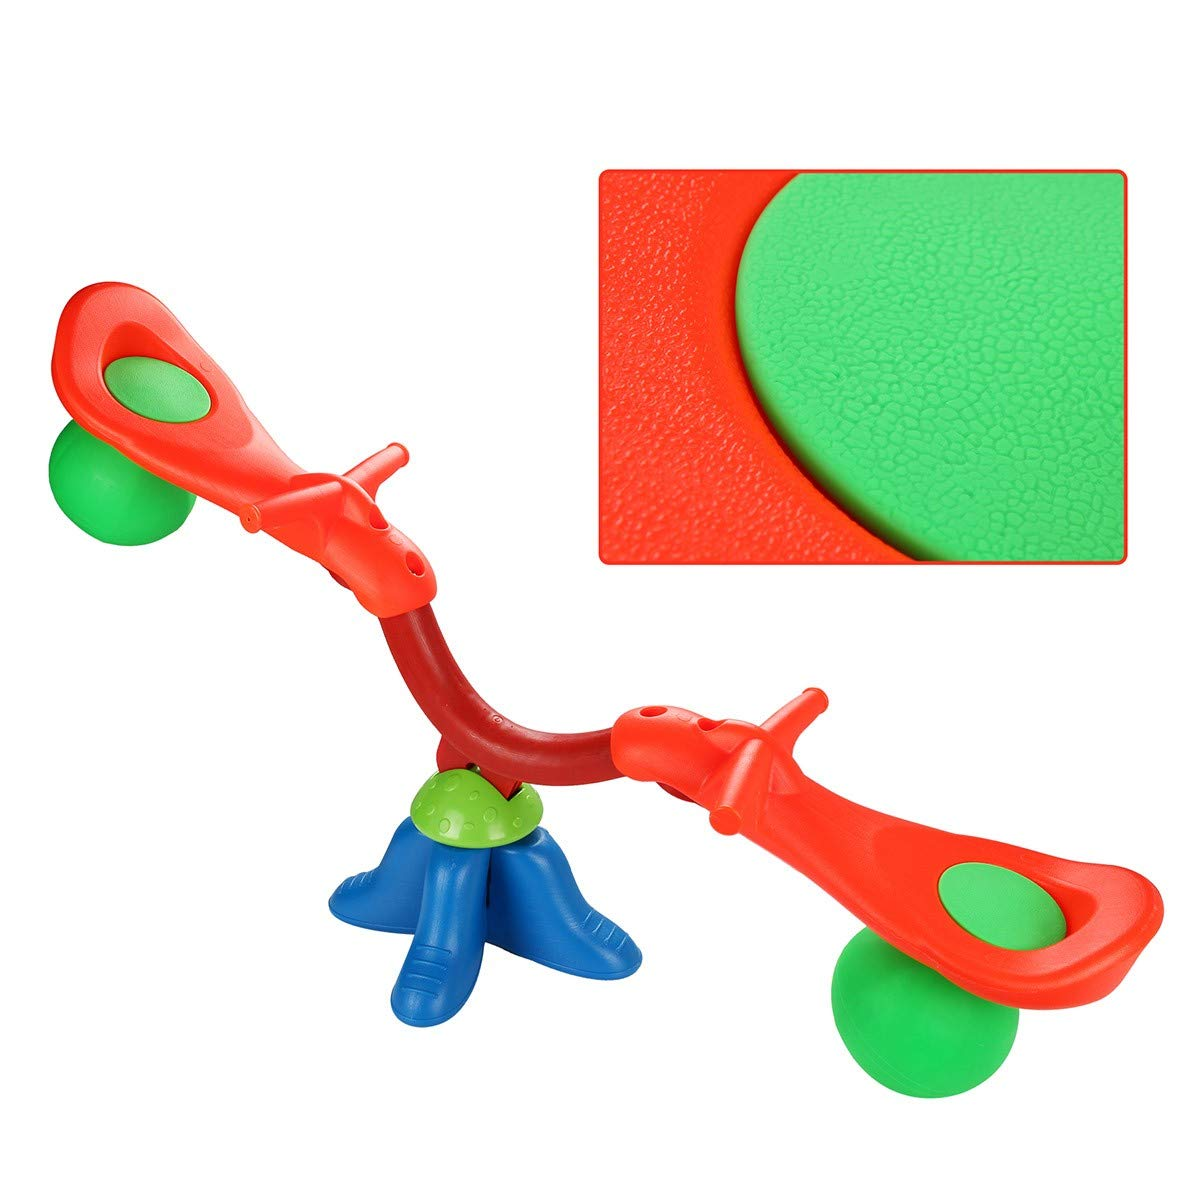 Kids Seesaw 360 Degree Spinning Teeter Totter Bouncer Bright and Cheerful Color Easy-Grip Handles by EnjoyShop (Image #4)